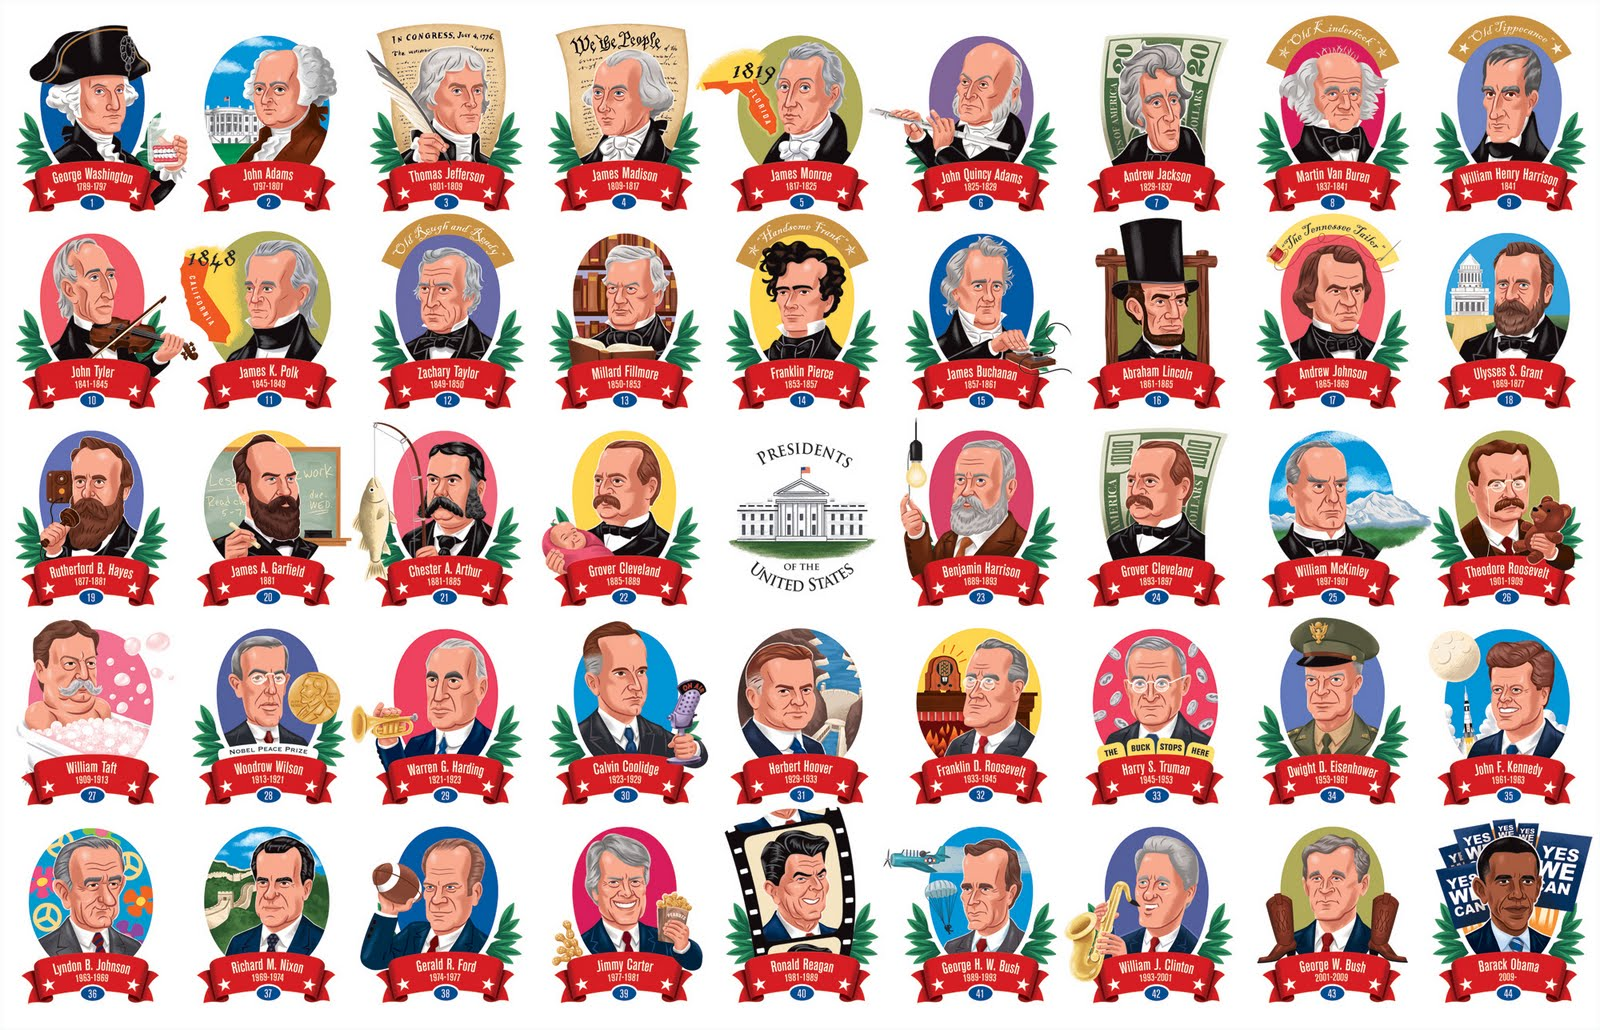 http://www.popsugar.com/moms/photo-gallery/27901063/image/27901072/Great-American-Presidents-Travel-Pouch-Puzzle